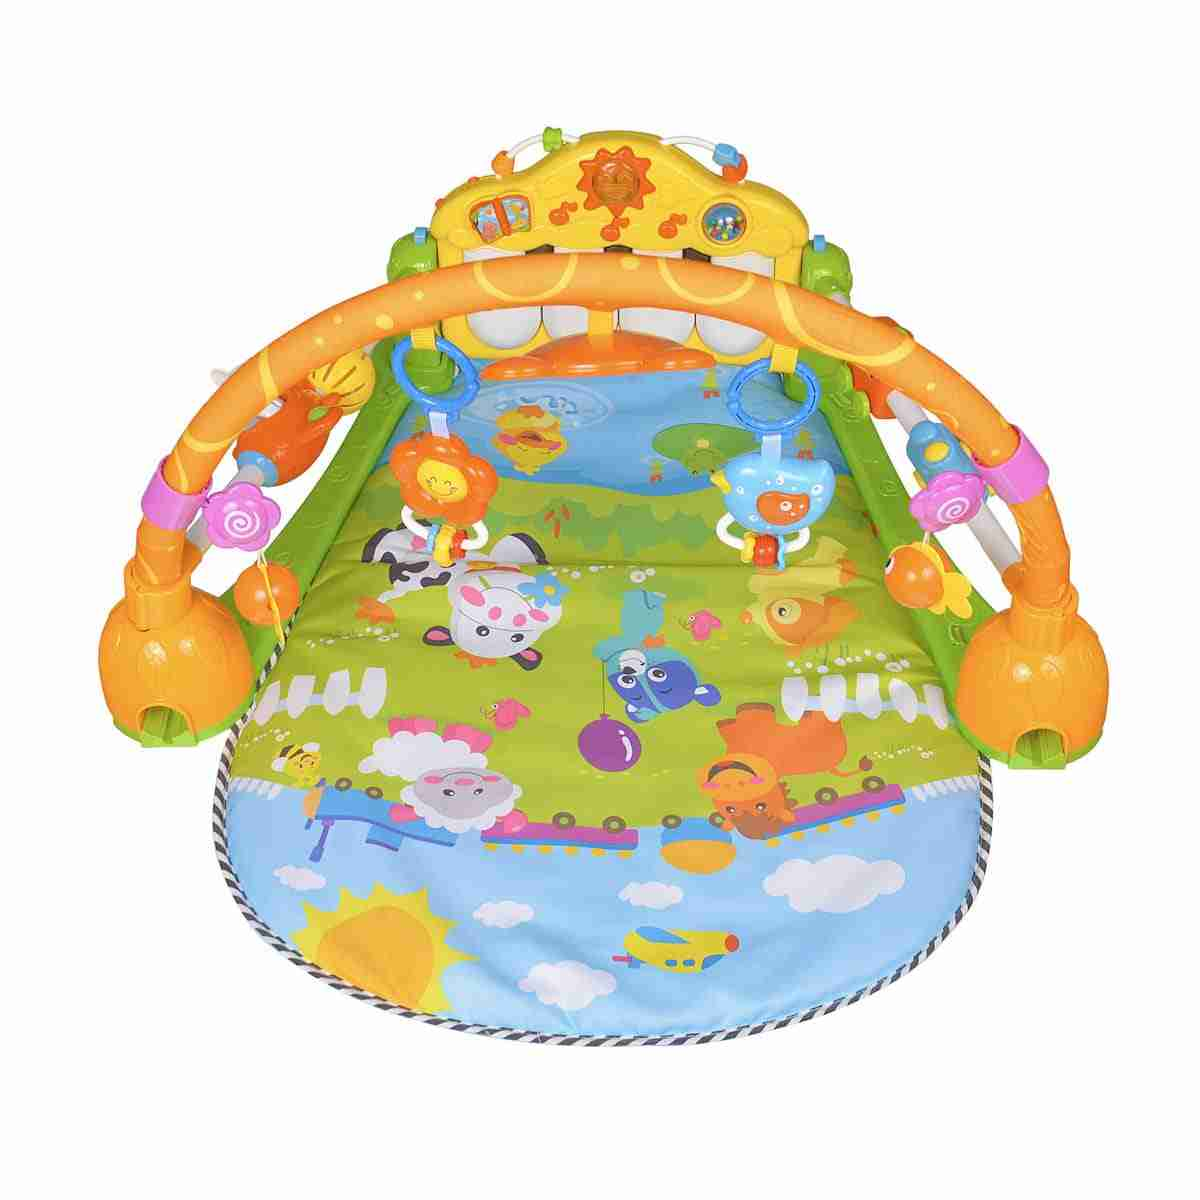 Mini Me And Friends multicolour activity mat